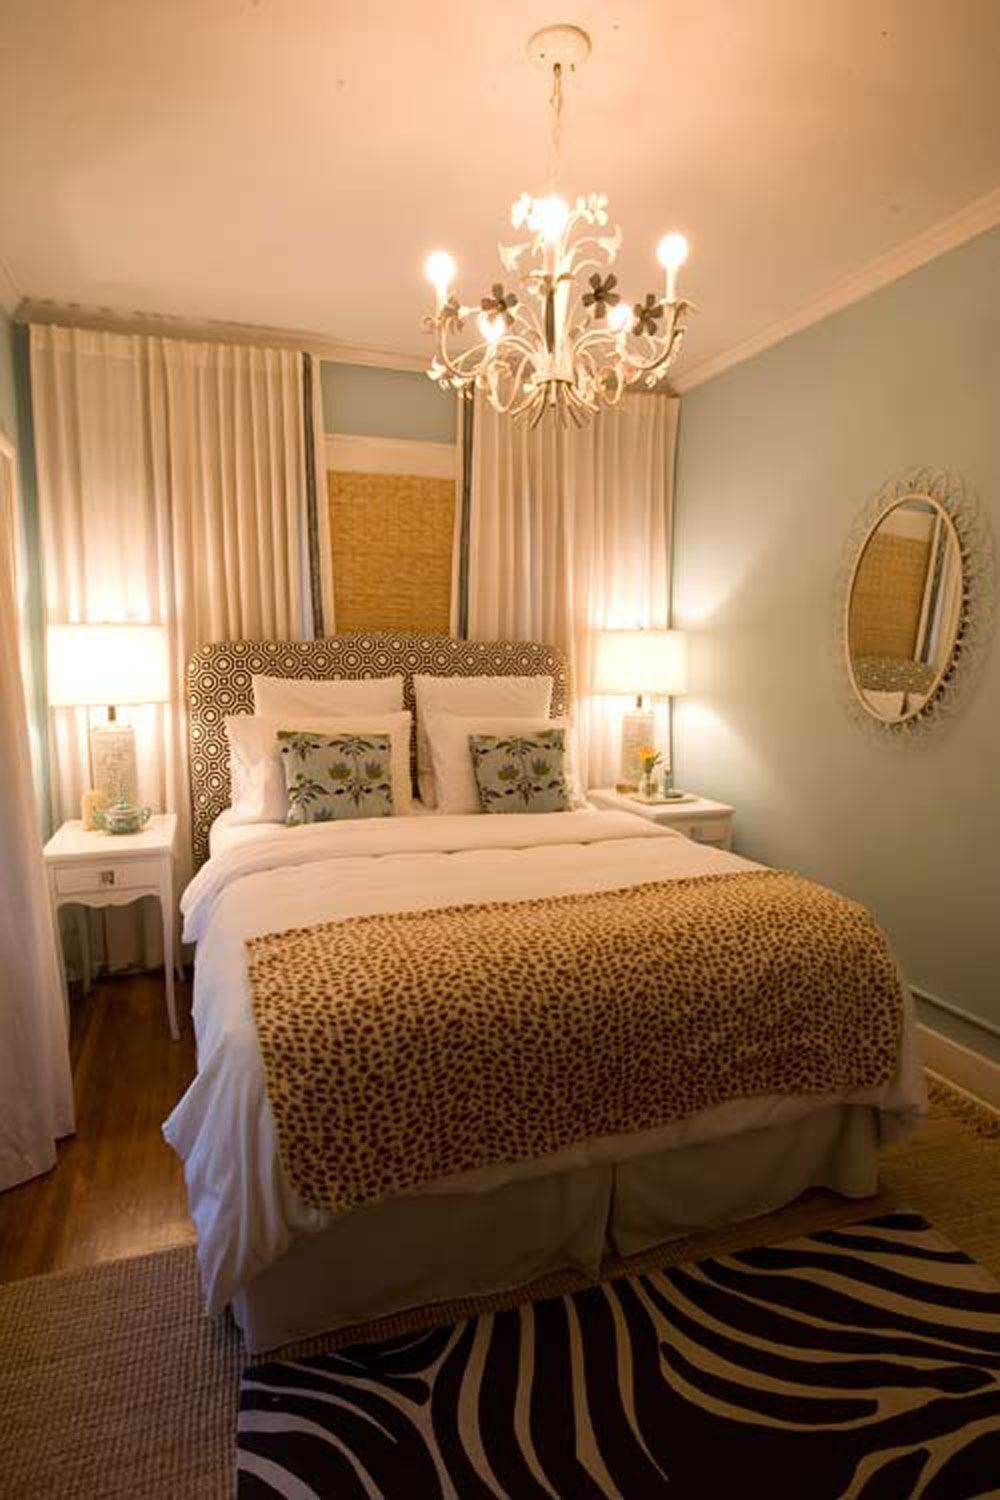 design tips for decorating a small bedroom on a budget 6 - Decorating Tips For A Small Bedroom